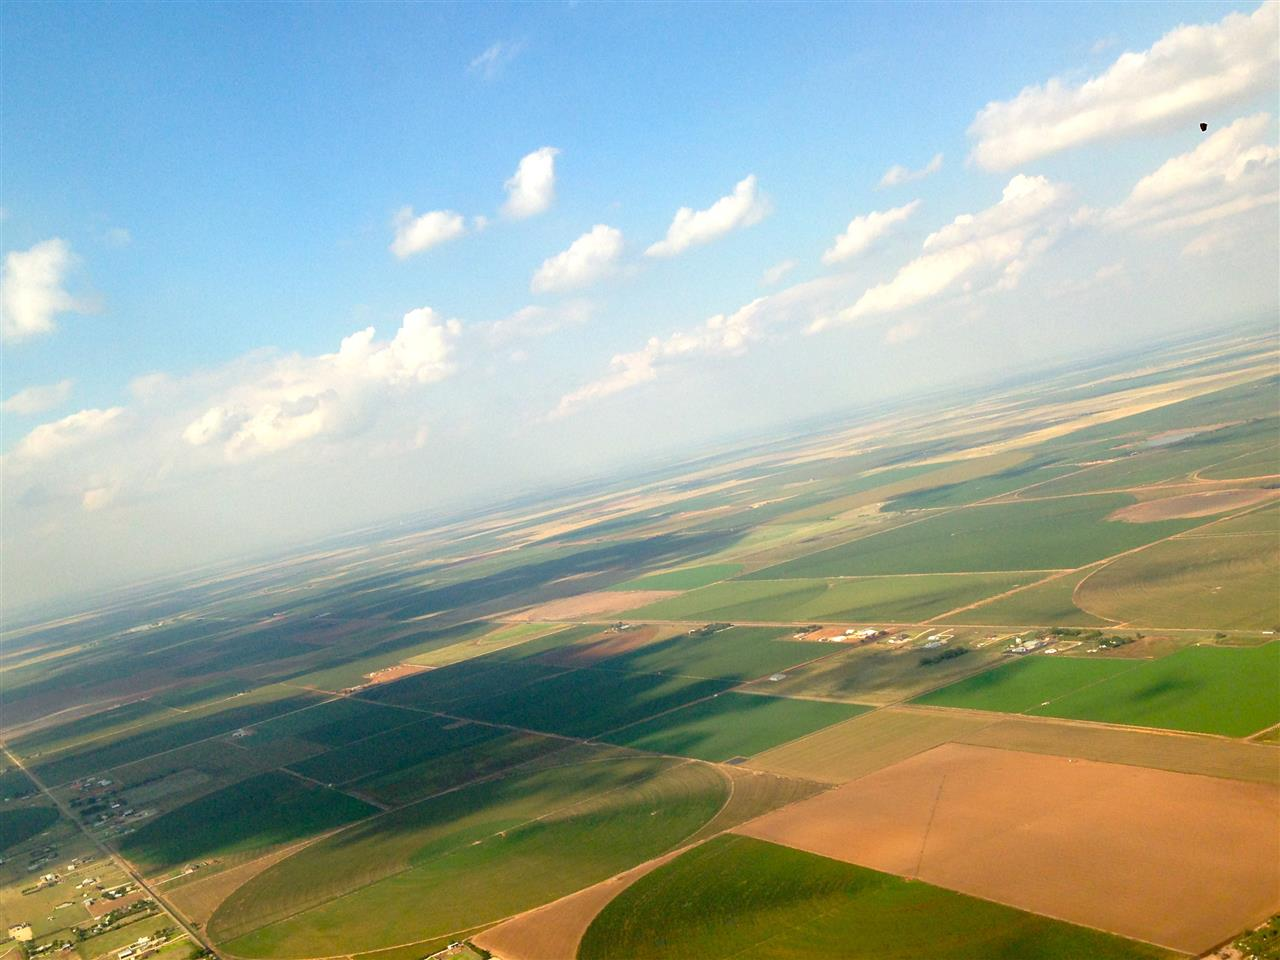 Wide open spaces--the land, the sky and an expansive horizon